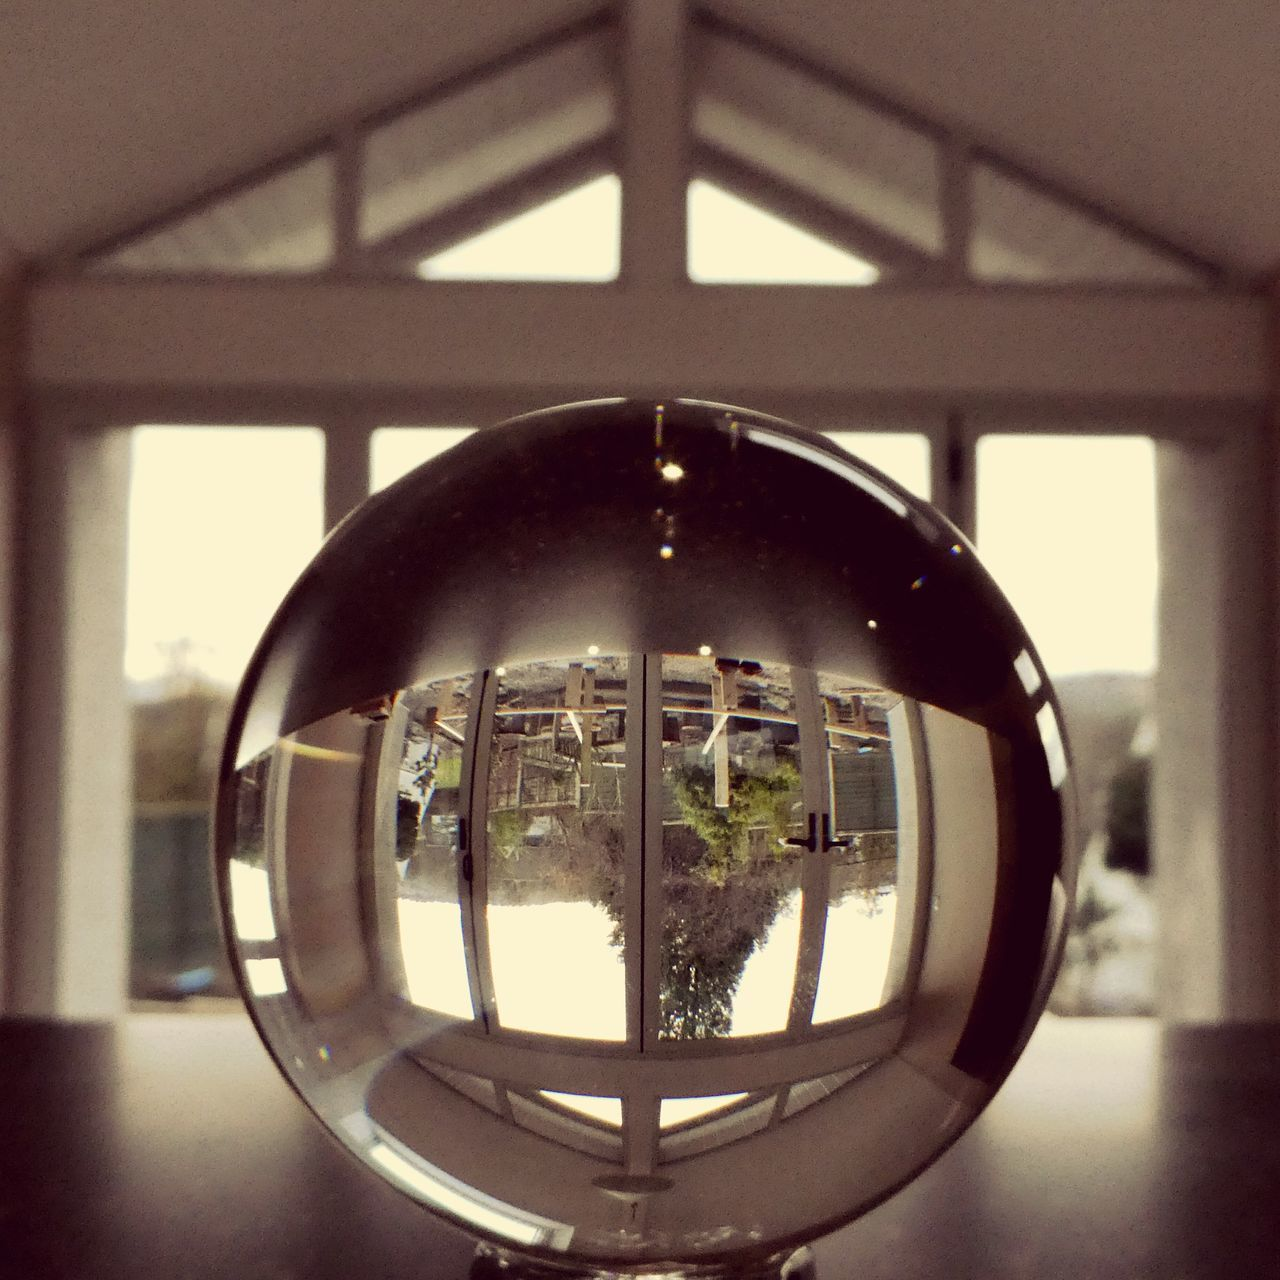 Things at home were a little upside down... Window Geometric Shape Reflection Glass Objects  Glass Reflection Close-up Built Structure Architecture Indoors  Glass Ball Indoors  Me In Reflection Glass Sphere View Through Altered Perceptions Upside Down Indoors  At Home Sweet Home The Architect - 2017 EyeEm Awards